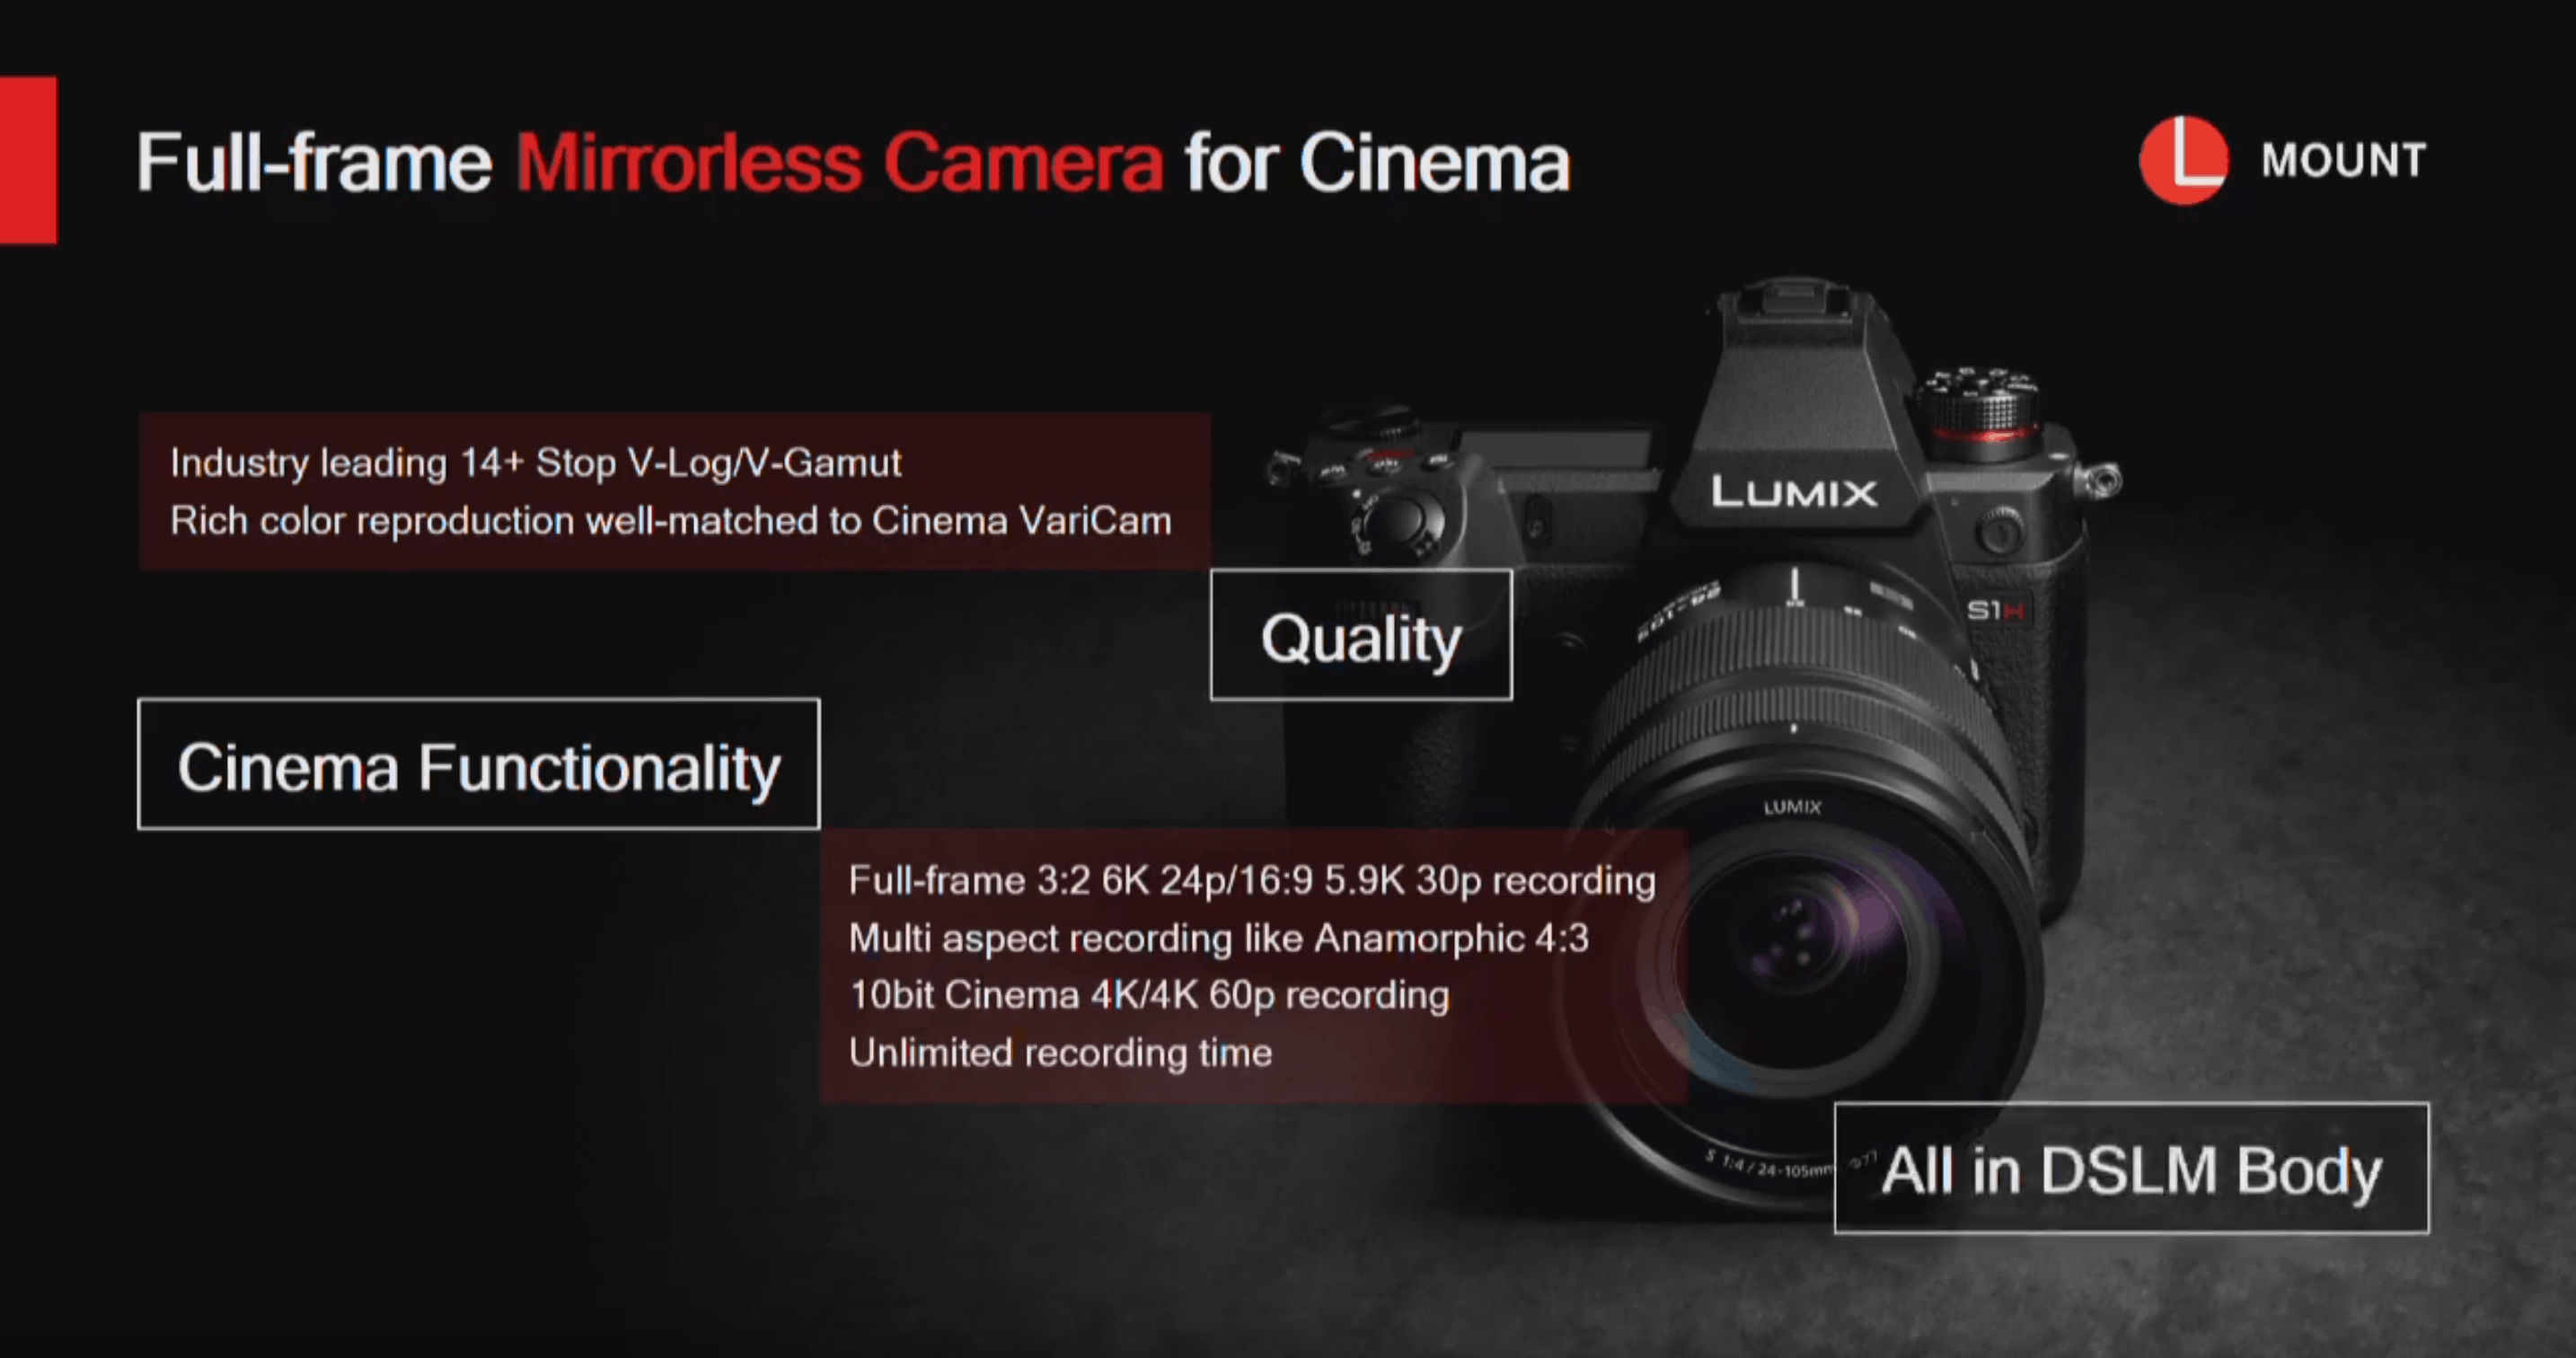 Camera News: Panasonic's $4,000 S1H rounds out full-frame